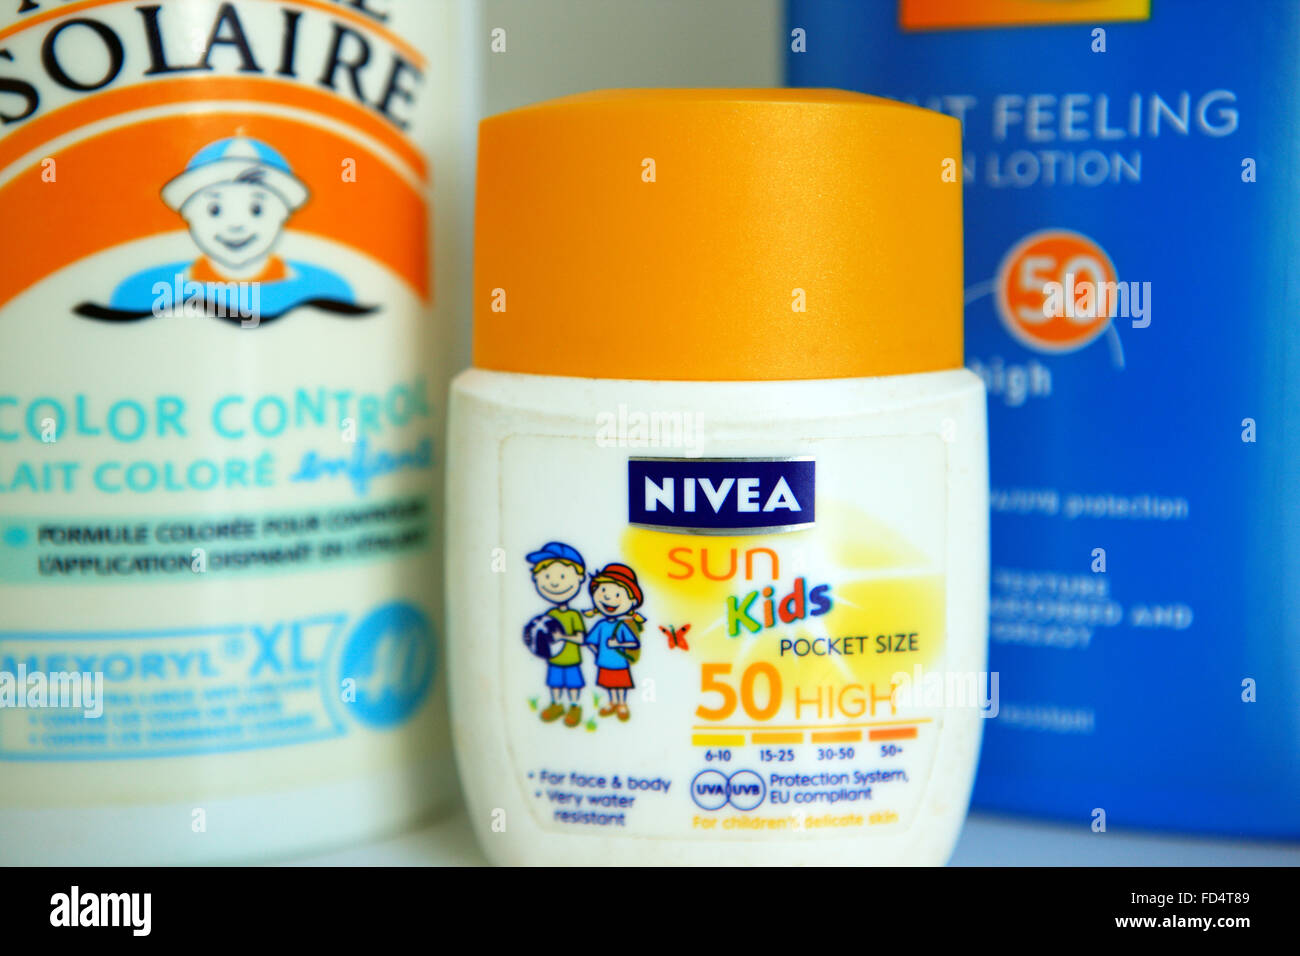 High factor sun screen for kids - Stock Image